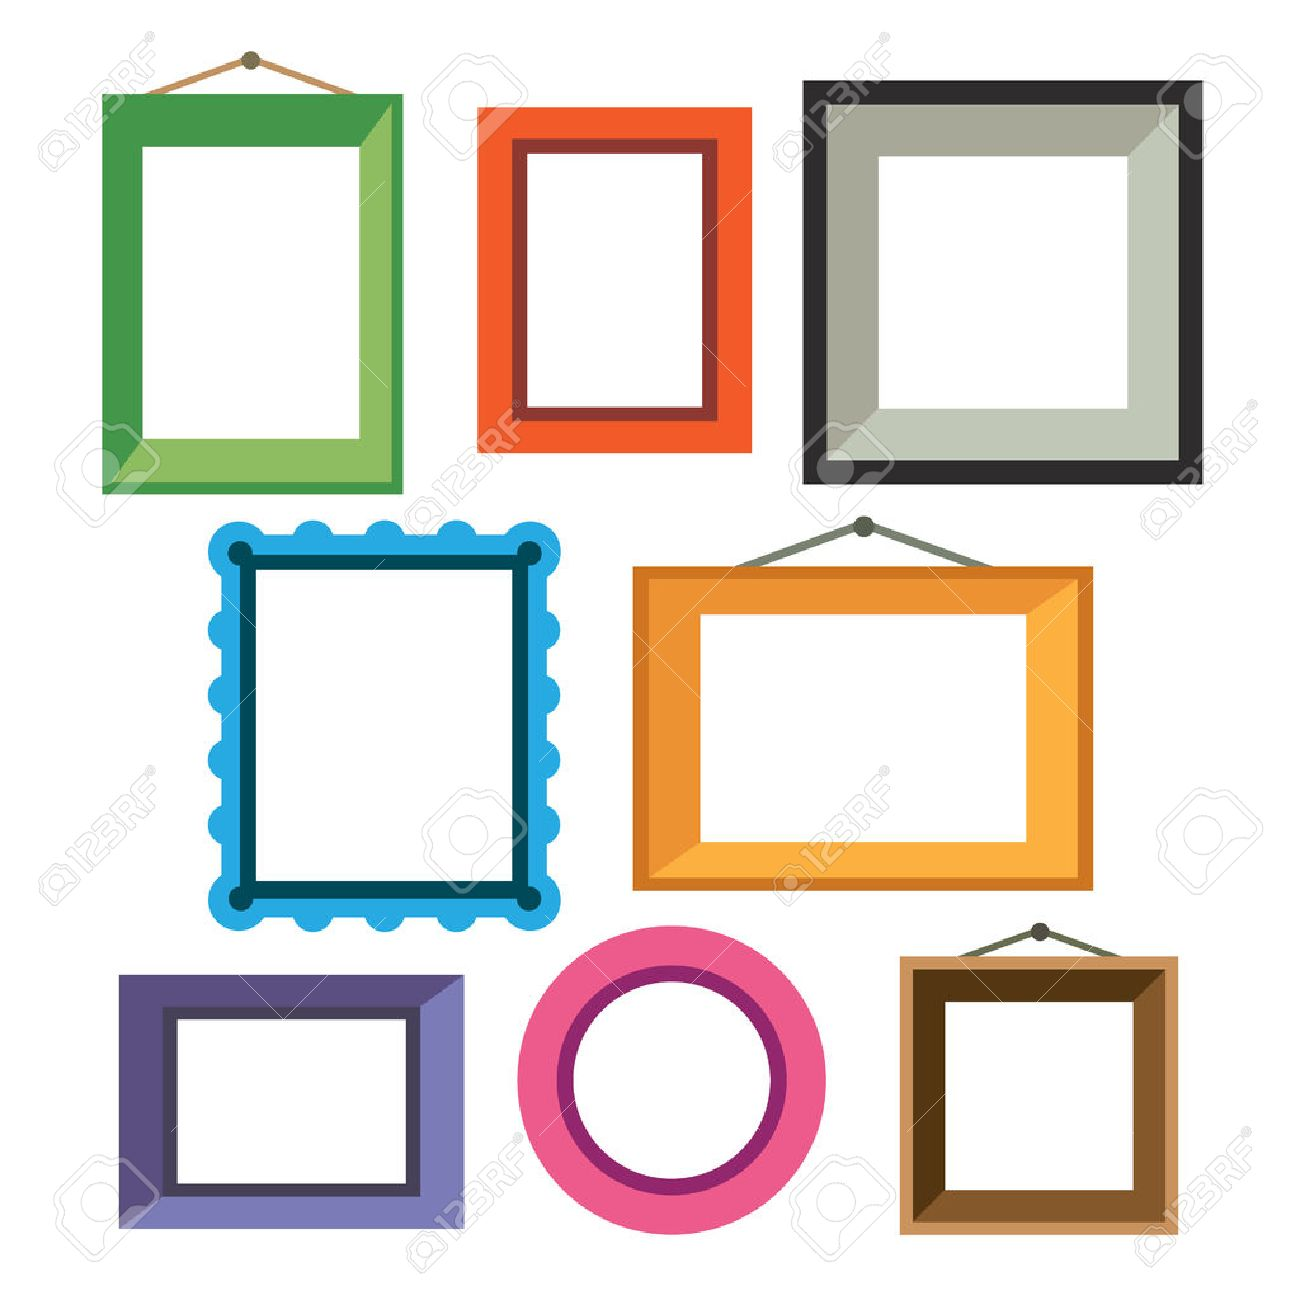 Vector Set Of Different Colorful Photo Frames In Flat Style Royalty ...